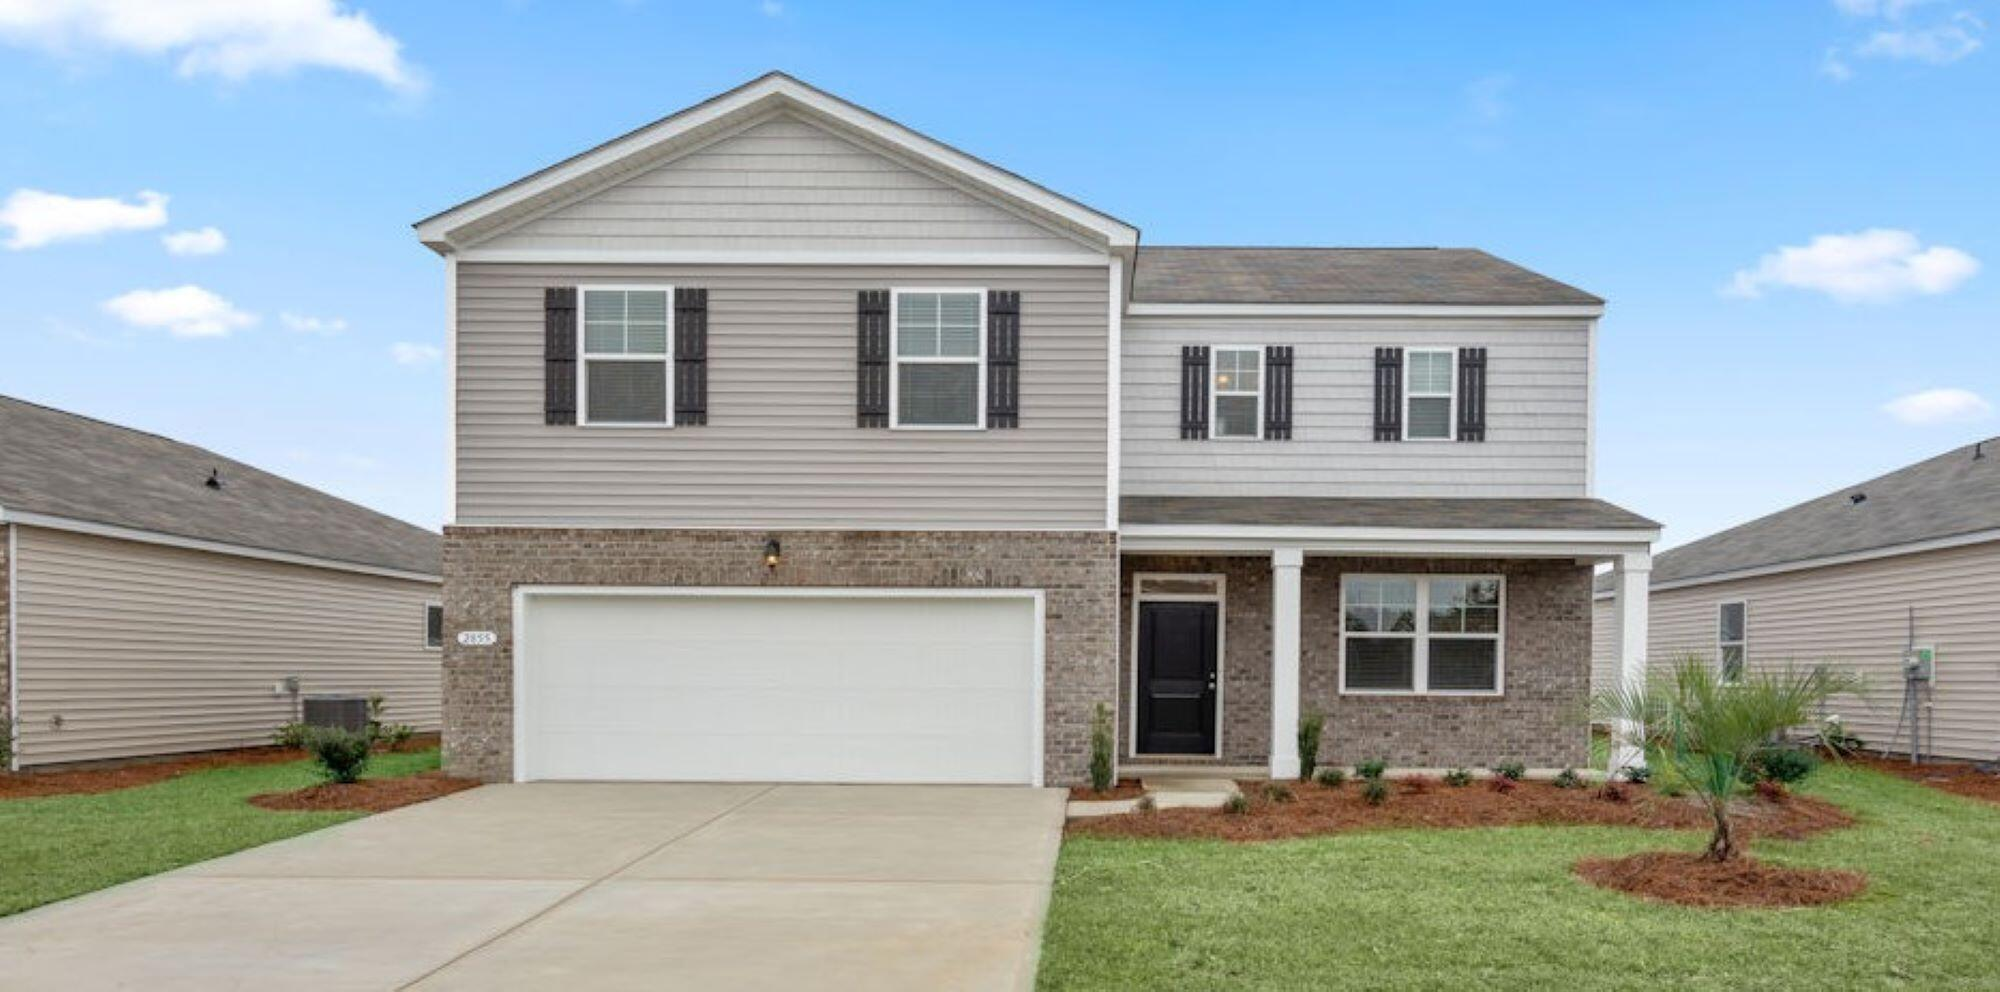 371 Azore Way Summerville, SC 29486